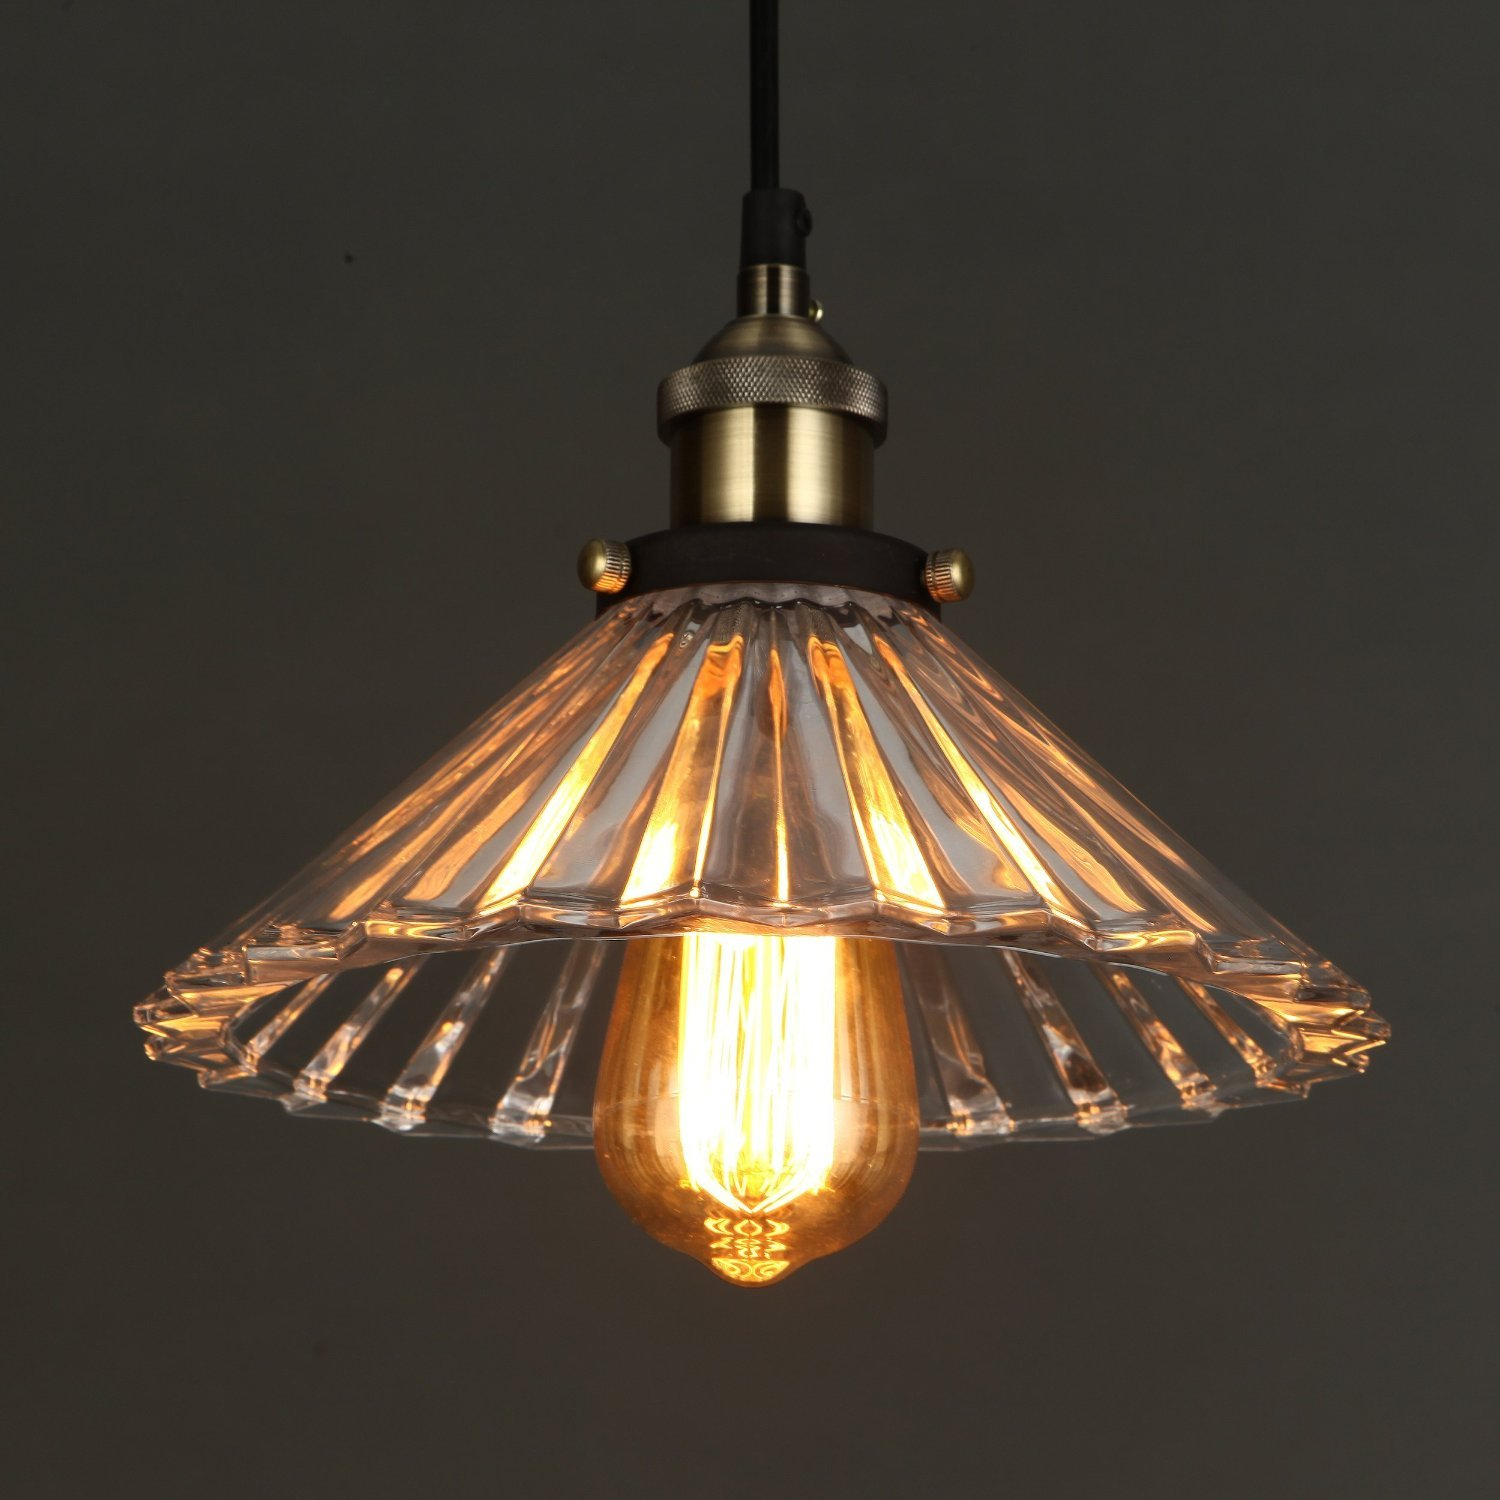 fl lamp vintage pendant single products black